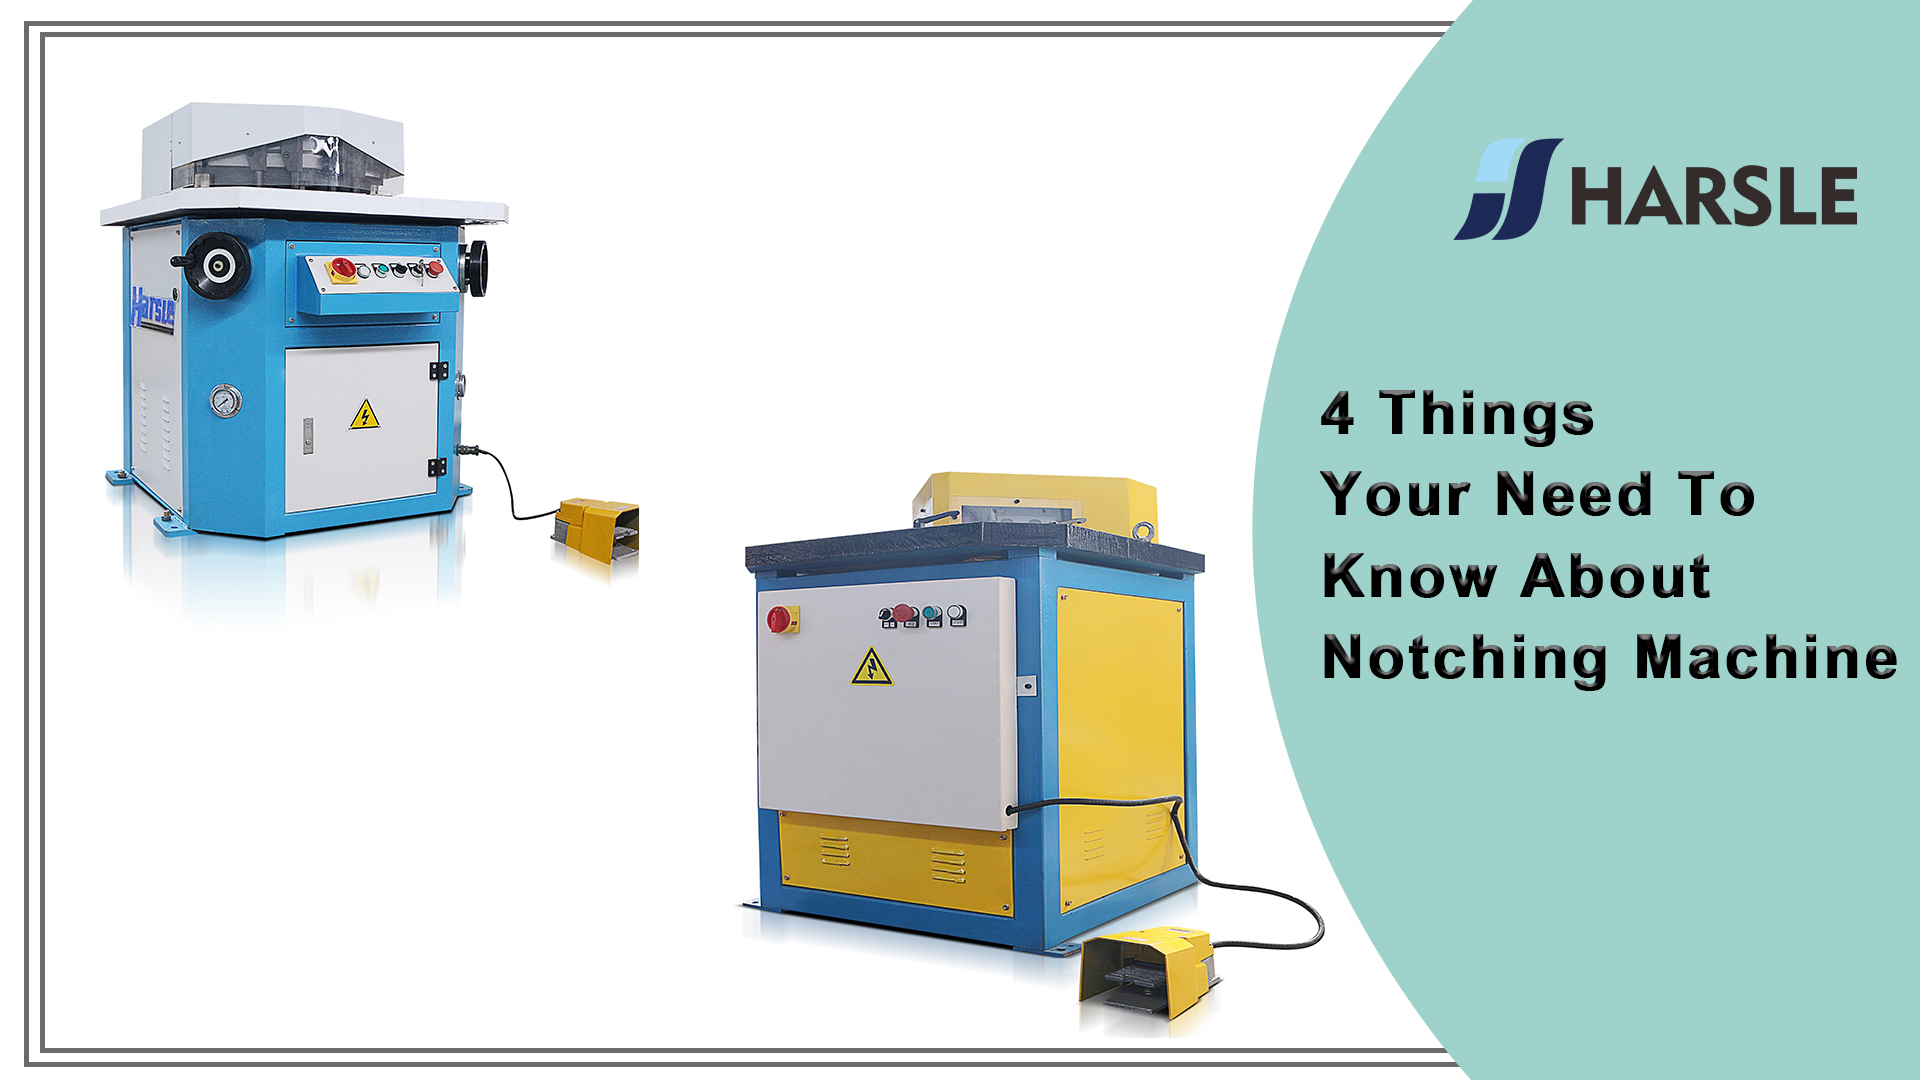 4 Things Your Need To Know About Notching Machine